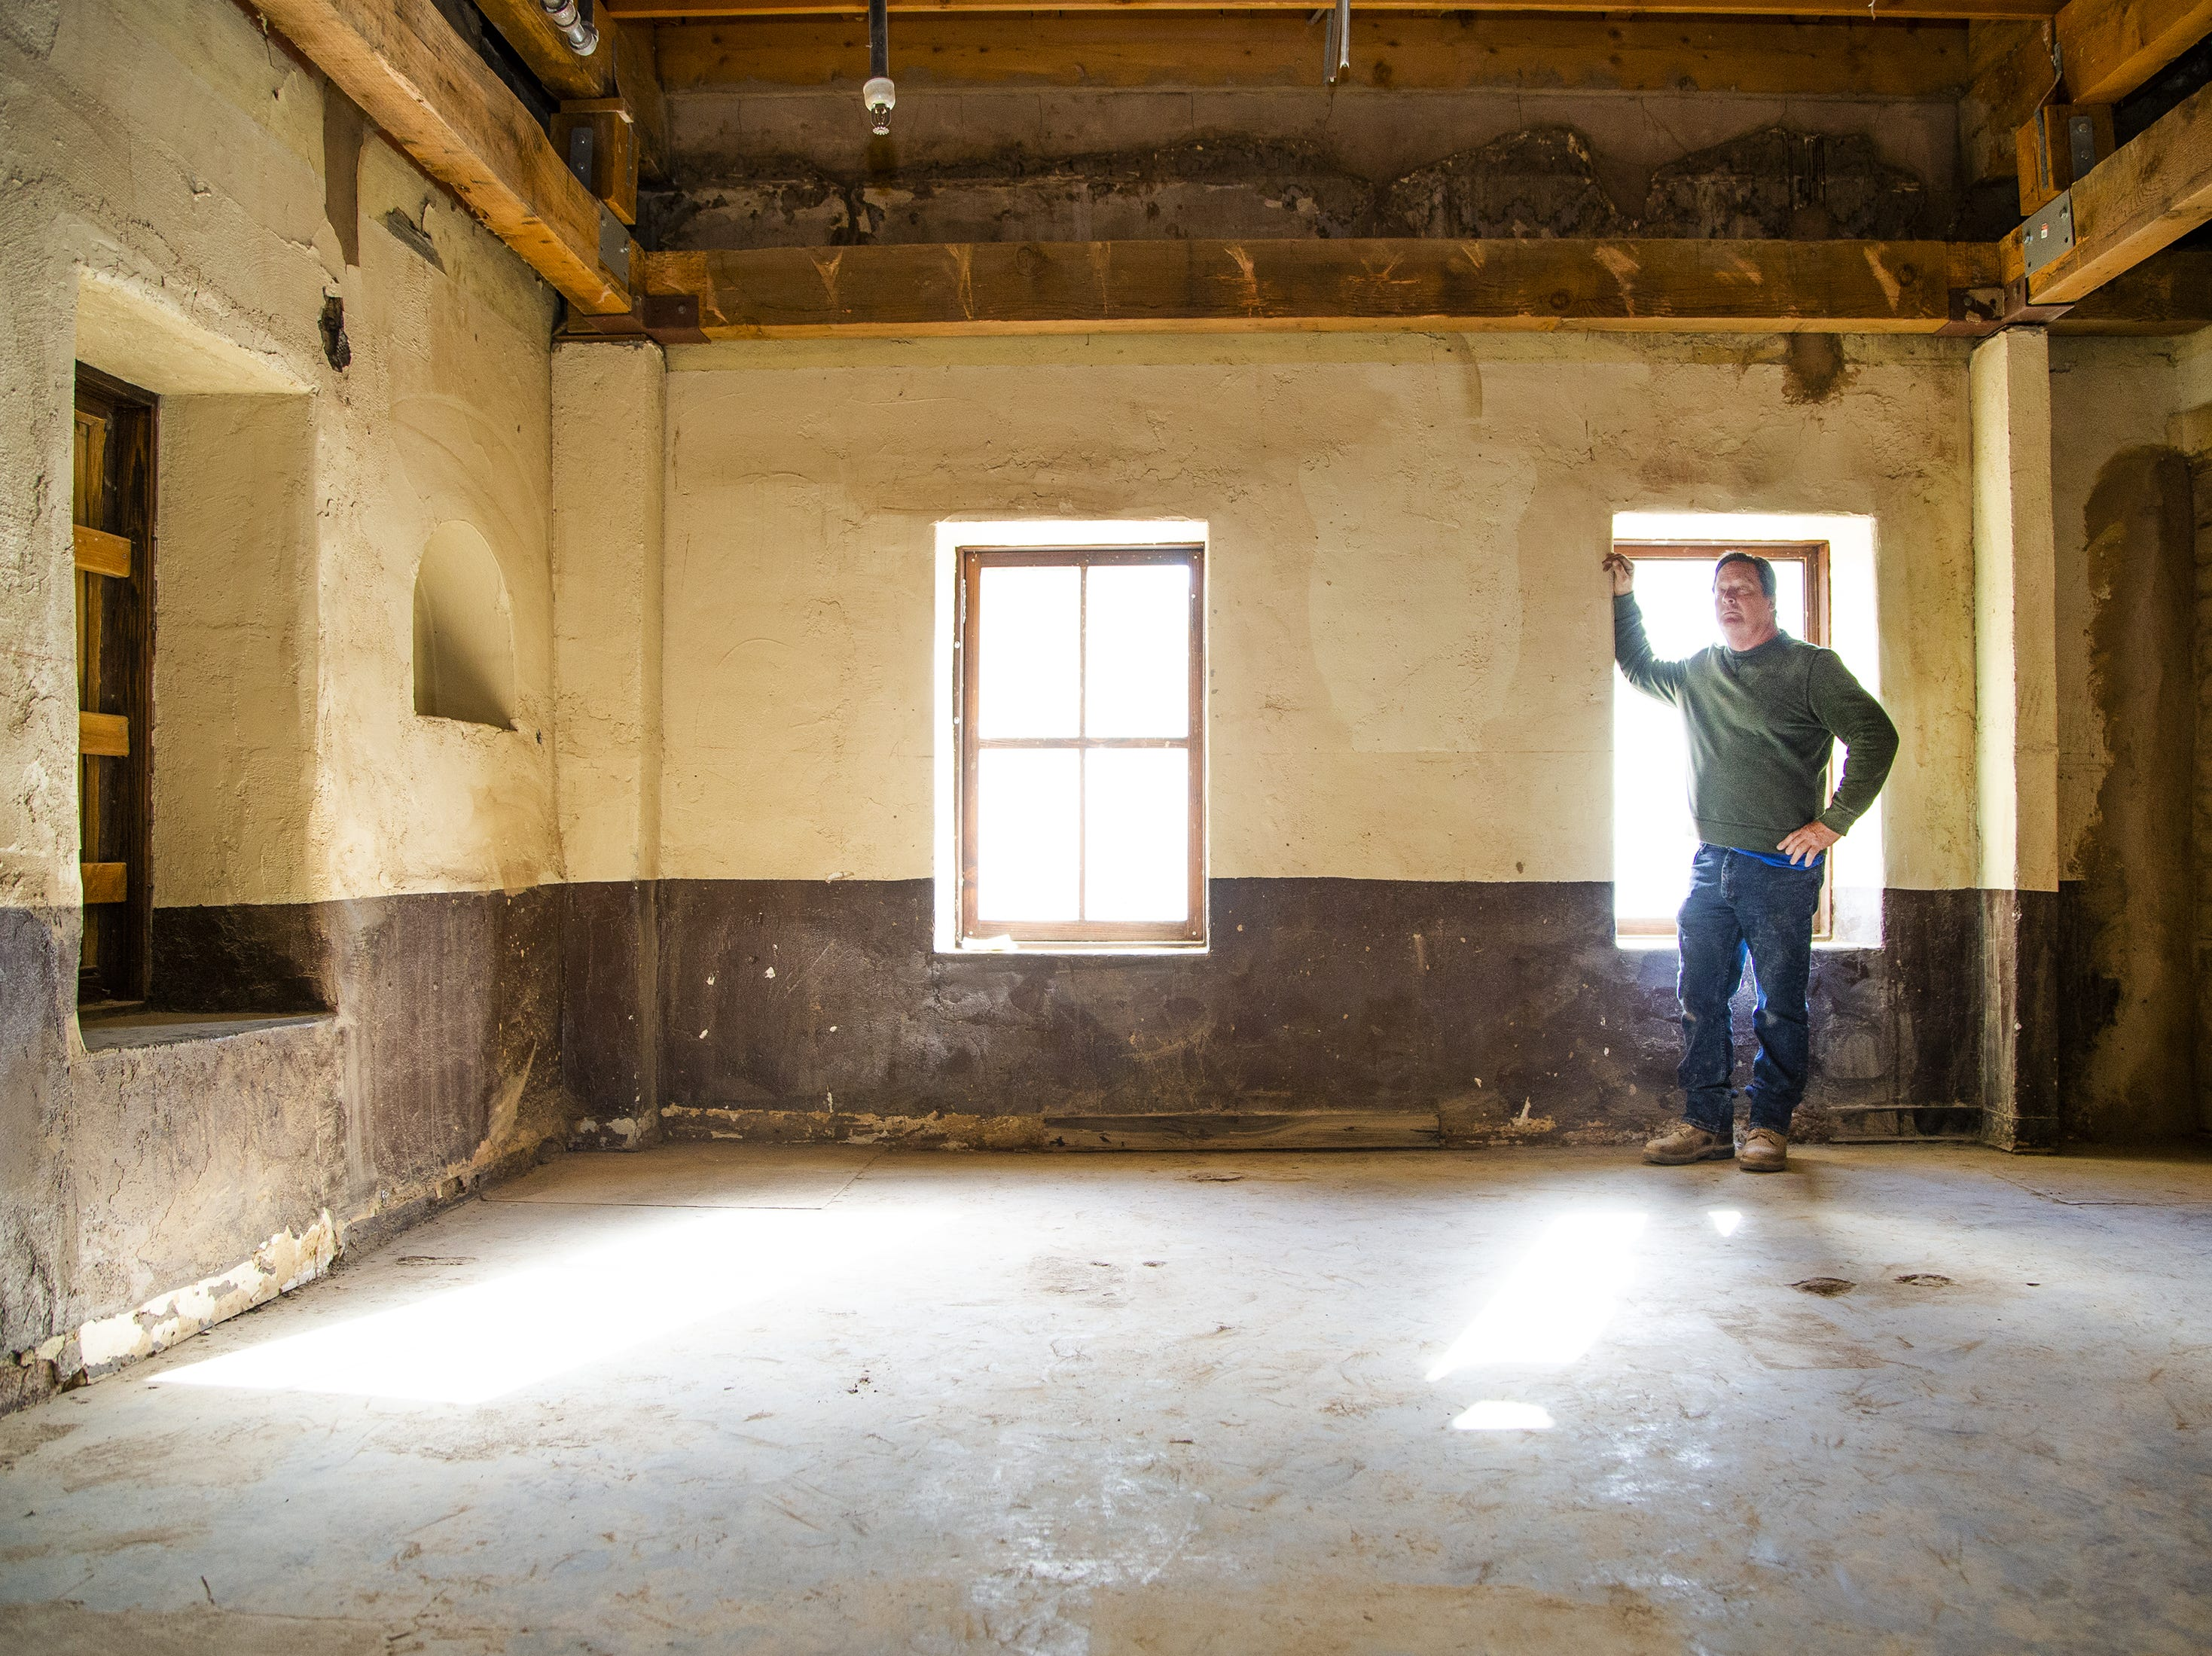 Reggie Mackay of Adobe Technology shows off the interior of the room that Carl Hayden was born in at Monti's La Casa Vieja.  Parts of the historic building, on Mill Avenue in Tempe, are being torn down on March 21, 2019. The parts of the building that are original, dating back to the late 1800s, are being retained. Only add-ons and additions made in later years are being torn down.